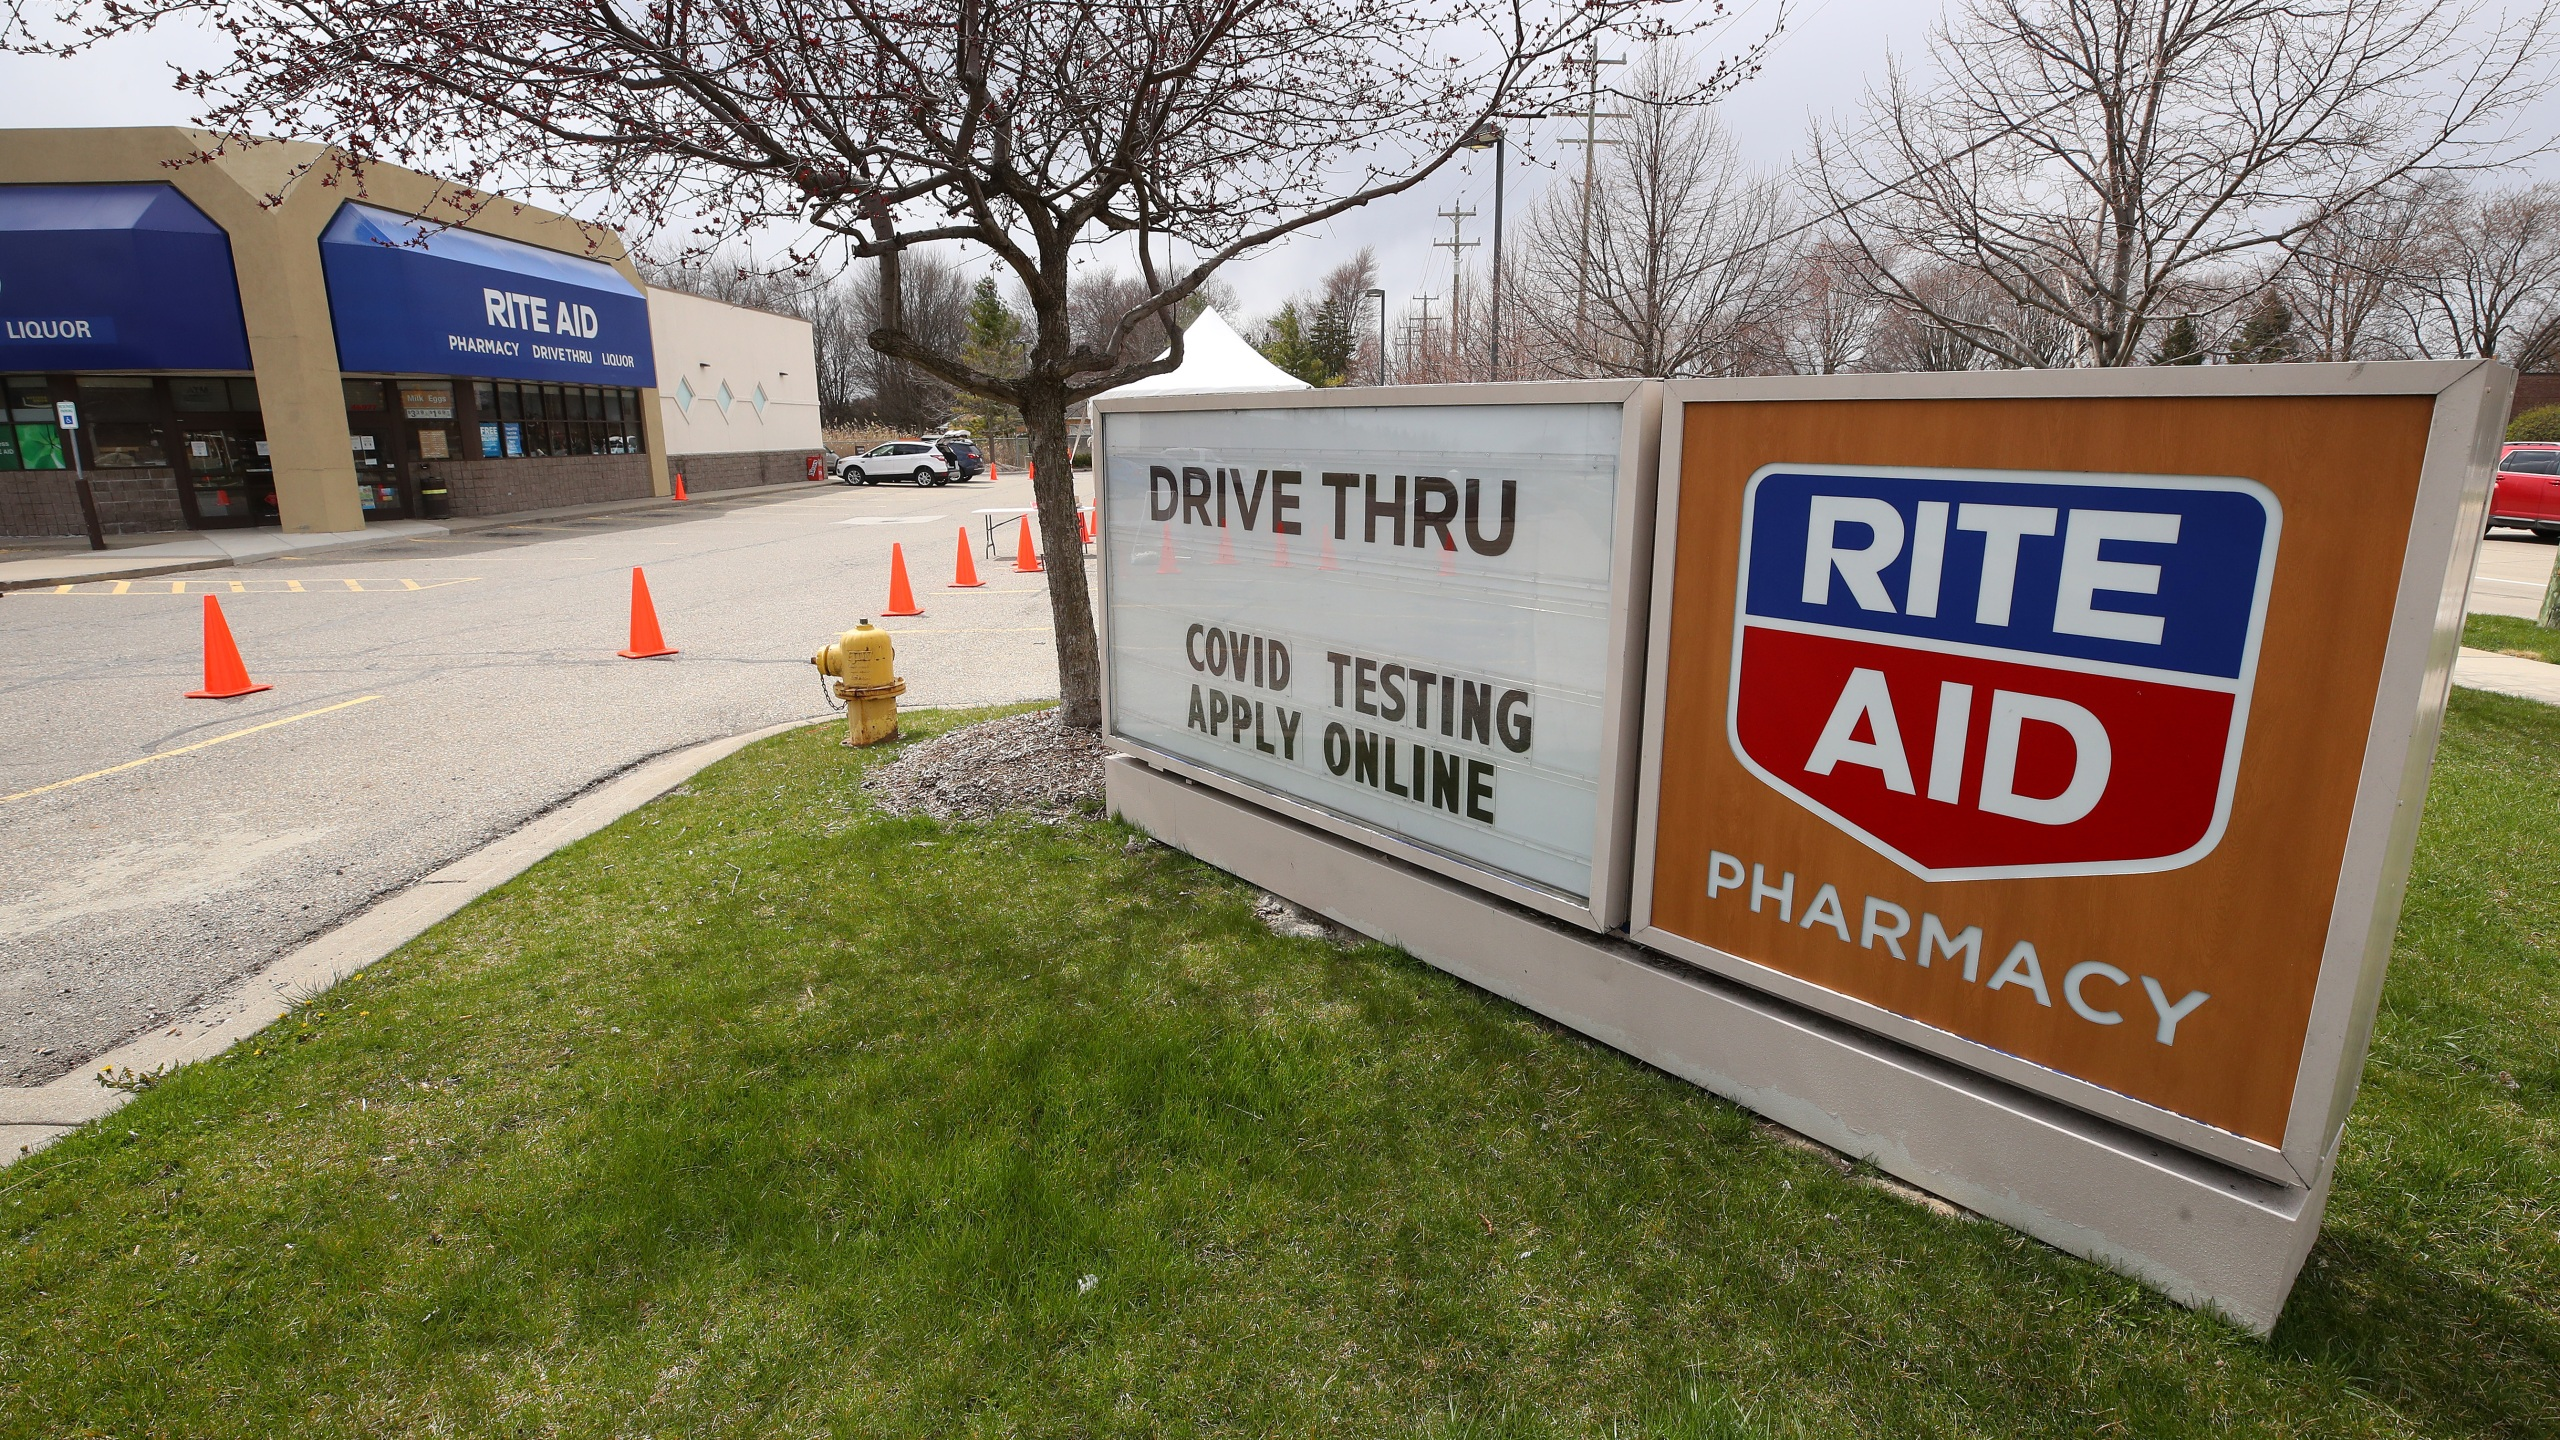 A Rite Aid pharmacy offering drive thru coronavirus testing is seen on April 21, 2020, in Macomb, Michigan. (Gregory Shamus/Getty Images)